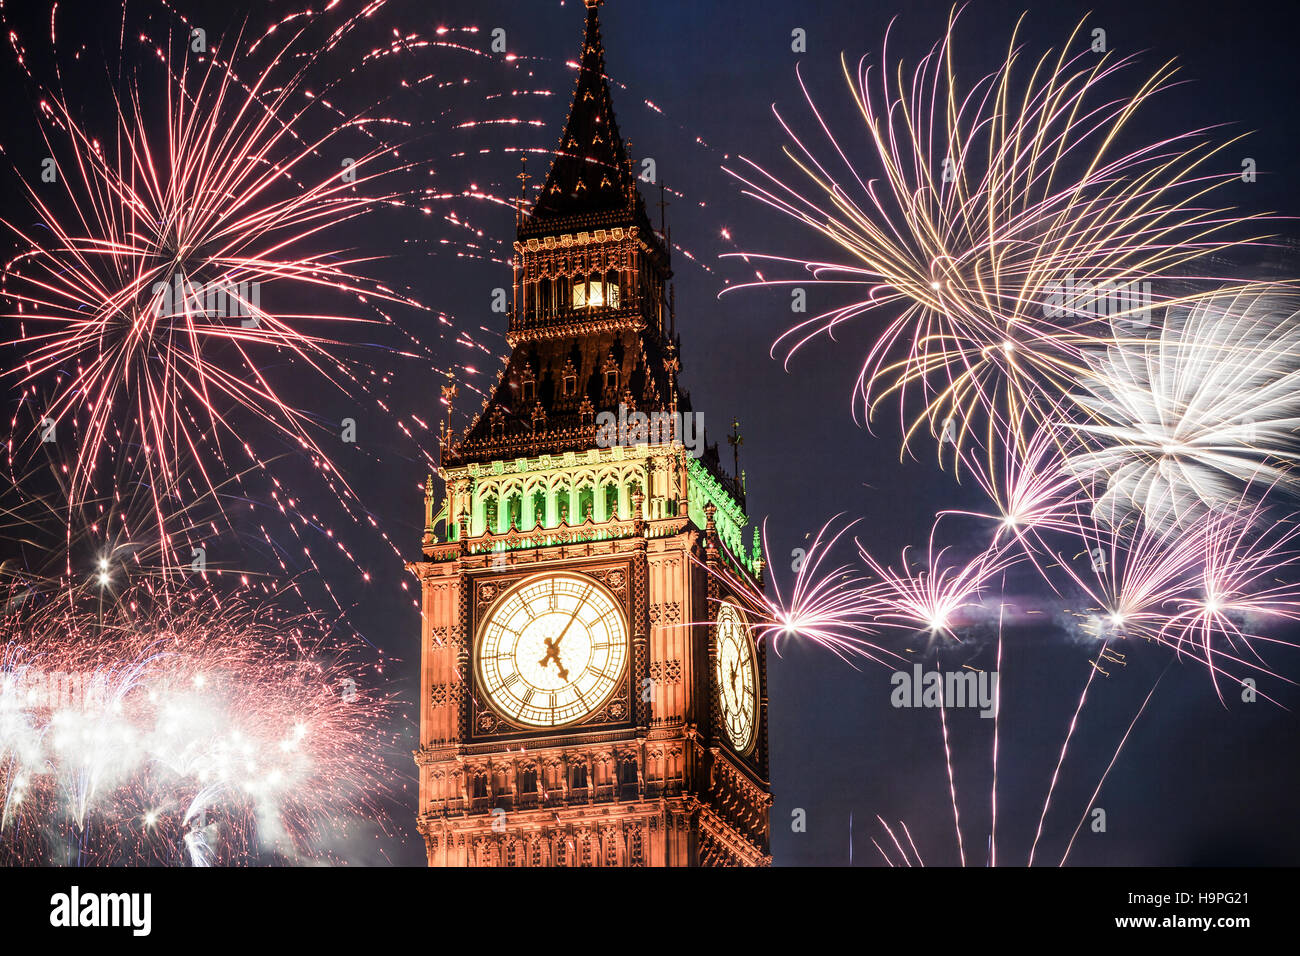 explosive fireworks around big ben new years eve celebration background